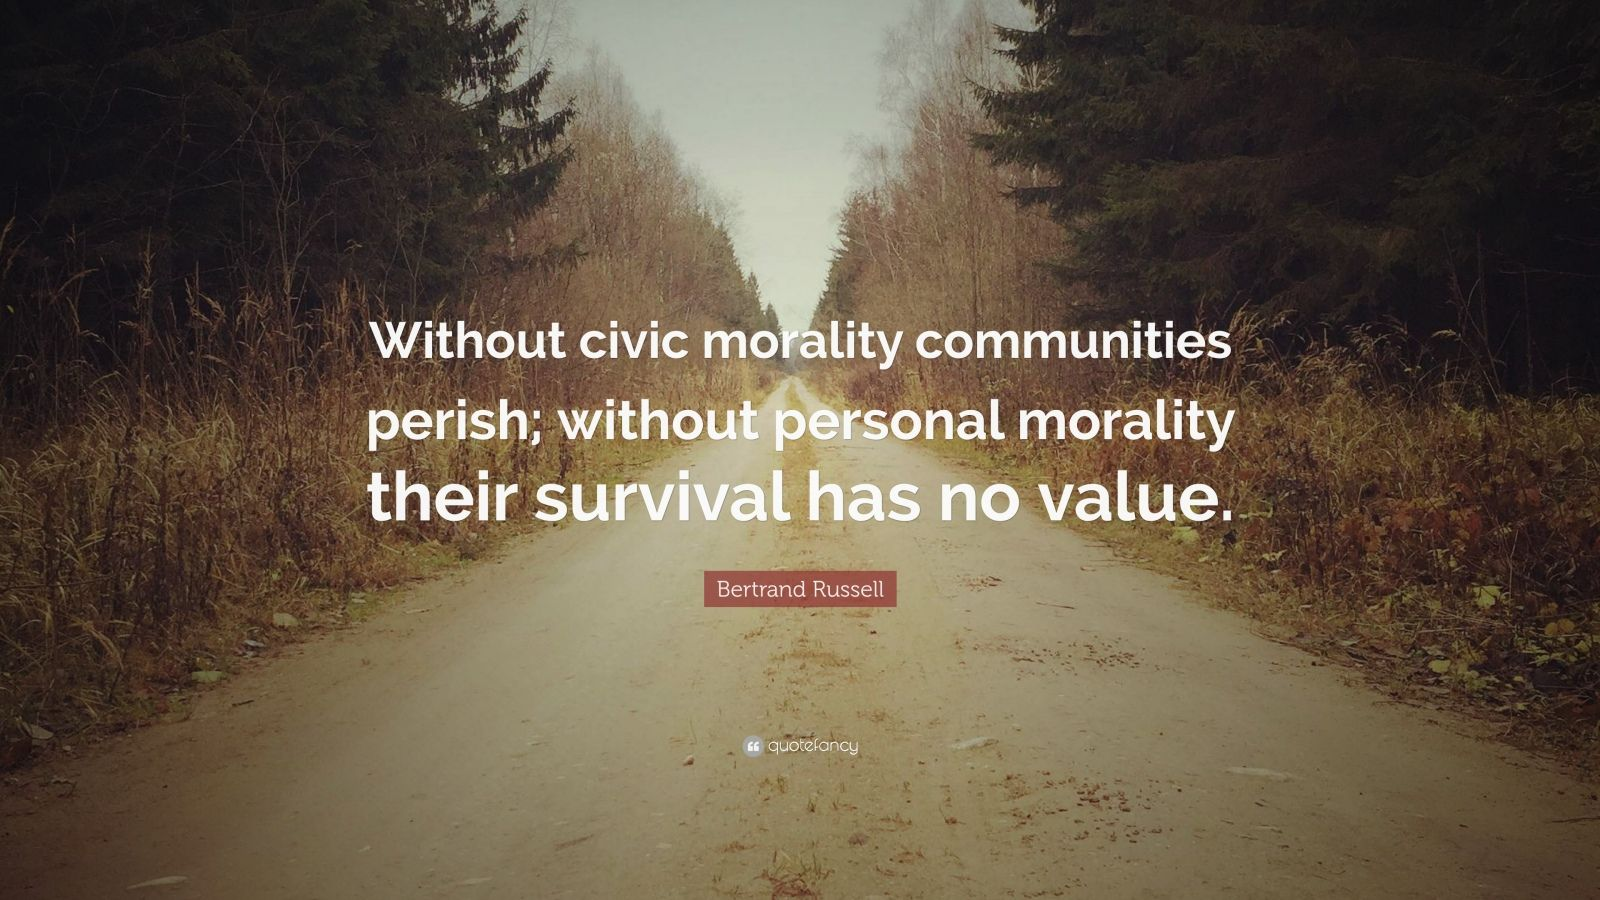 """Bertrand Russell Quote: """"Without civic morality communities perish; without personal morality their survival has no value."""""""